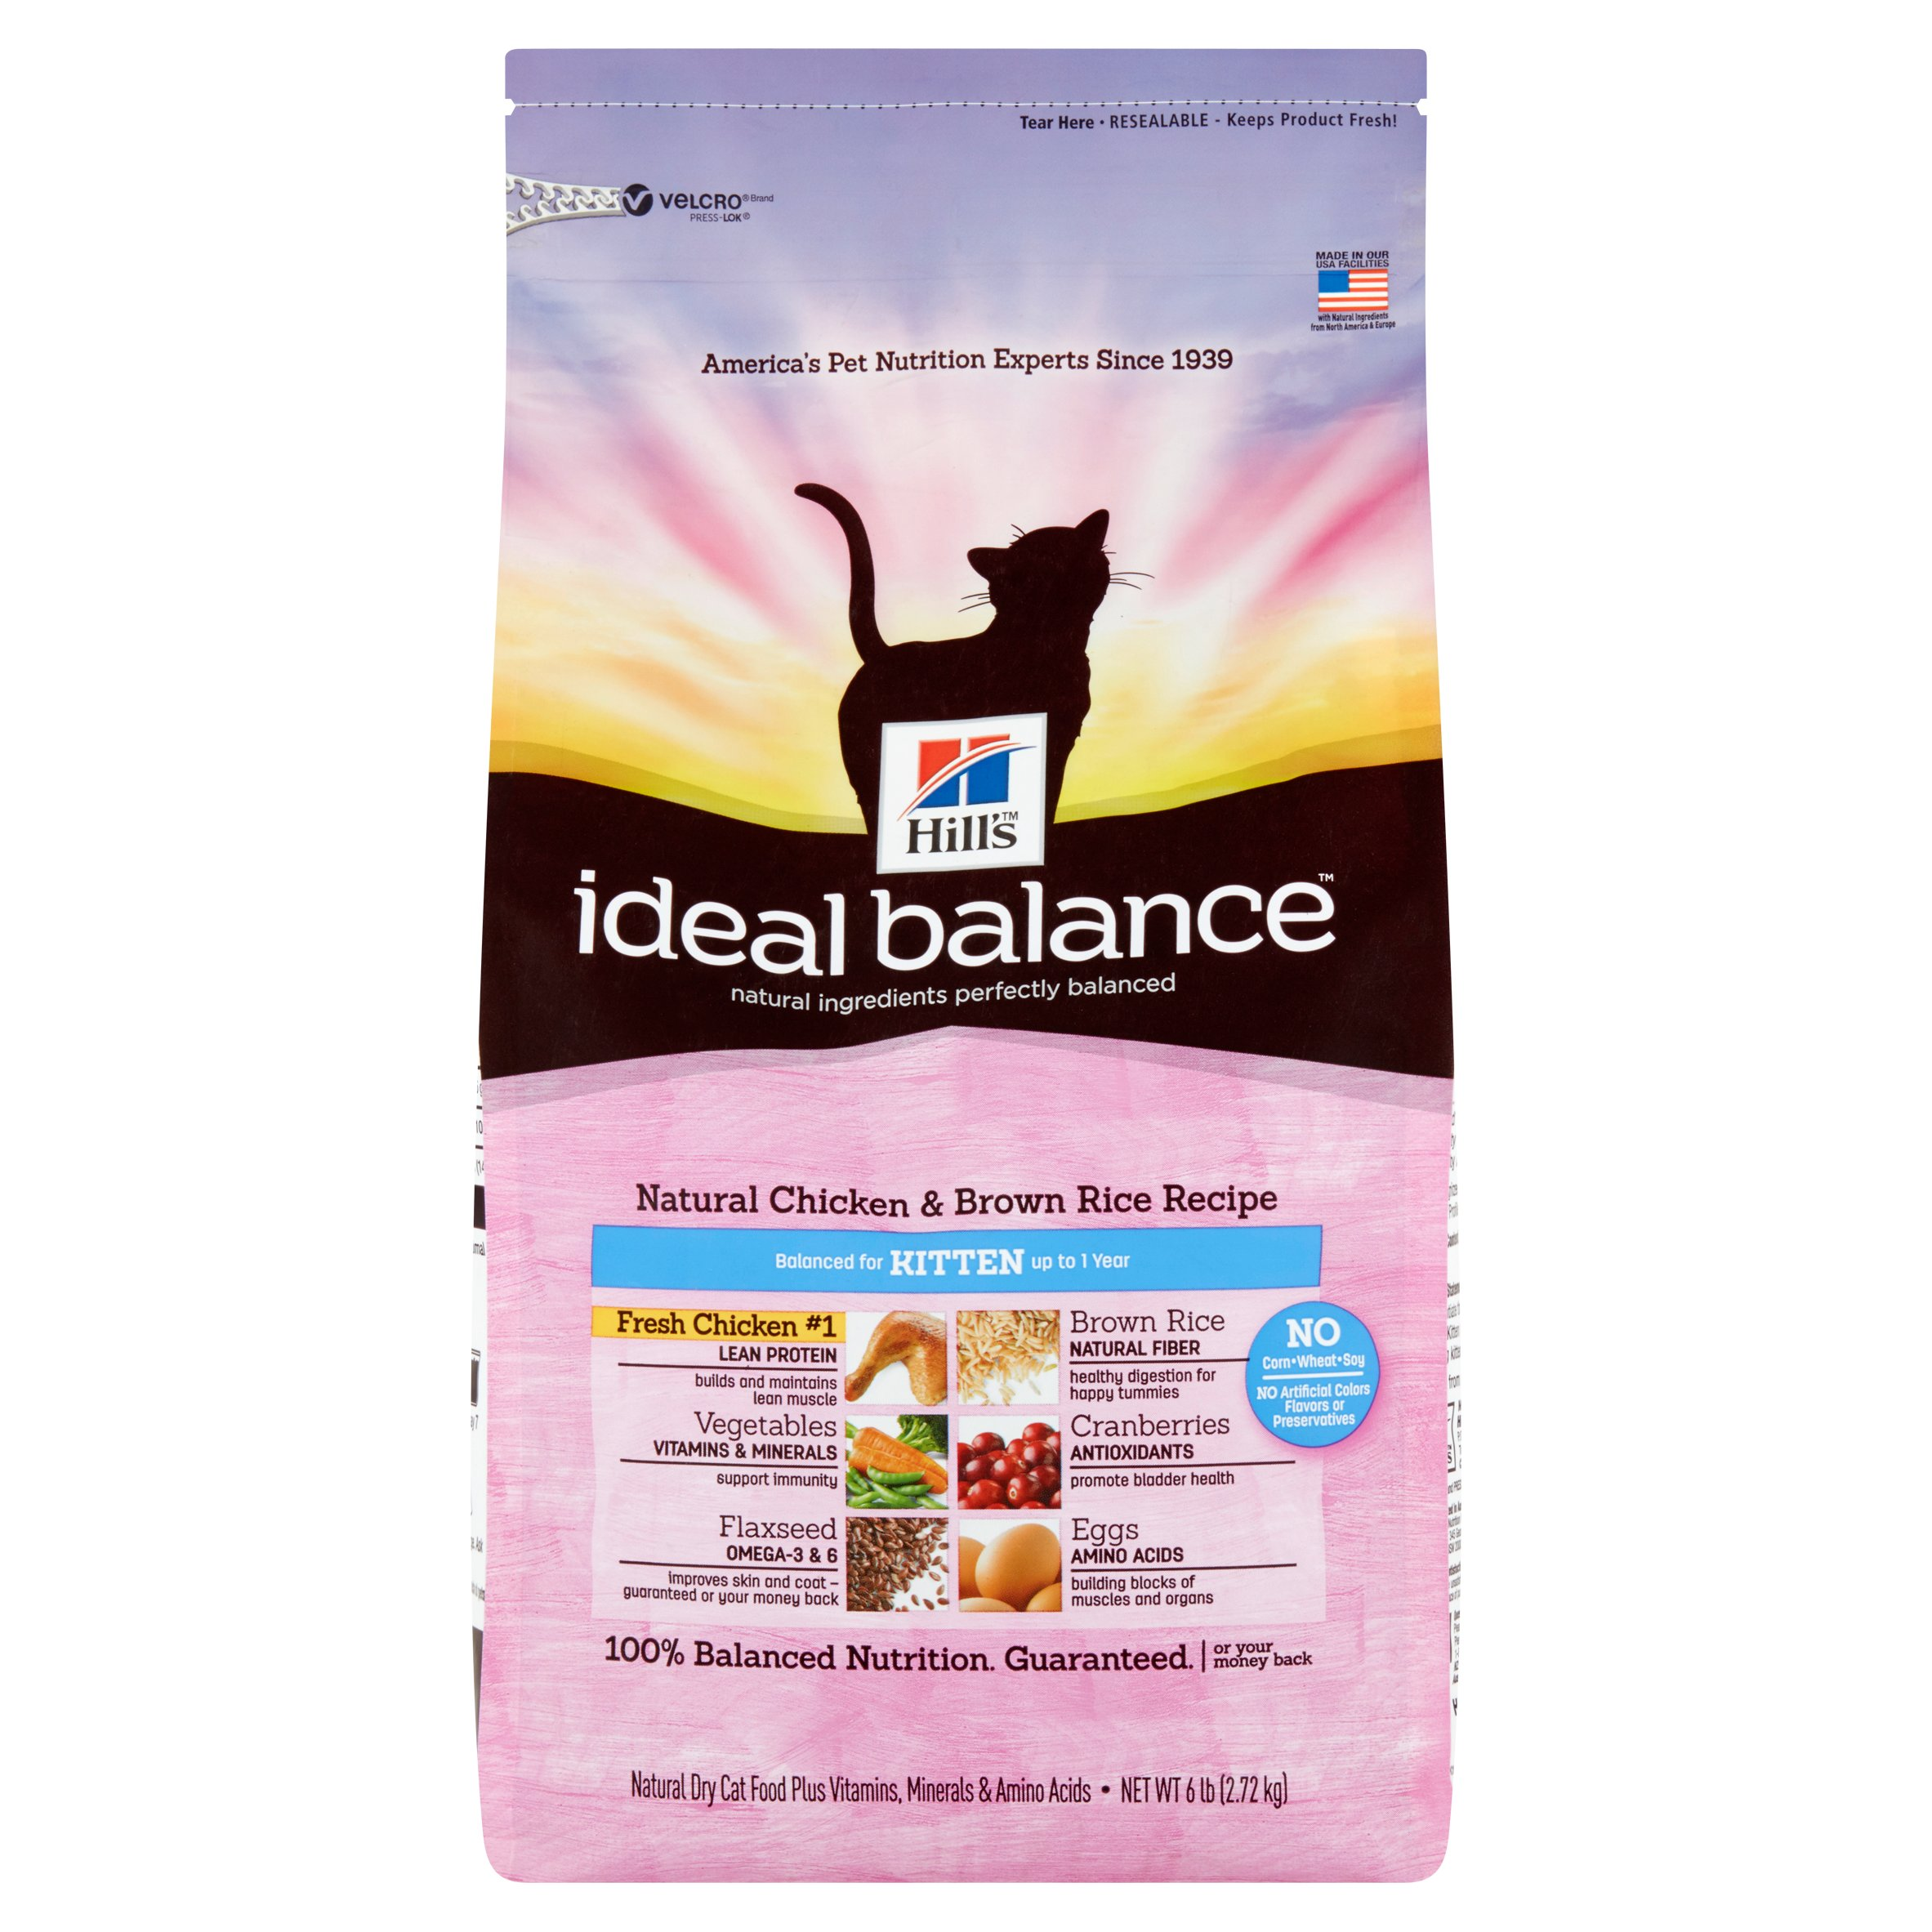 Hill's Ideal Balance (Get $5 back for every $20 spent) Kitten Natural Chicken & Brown Rice Recipe Dry Cat Food, 6 lb bag